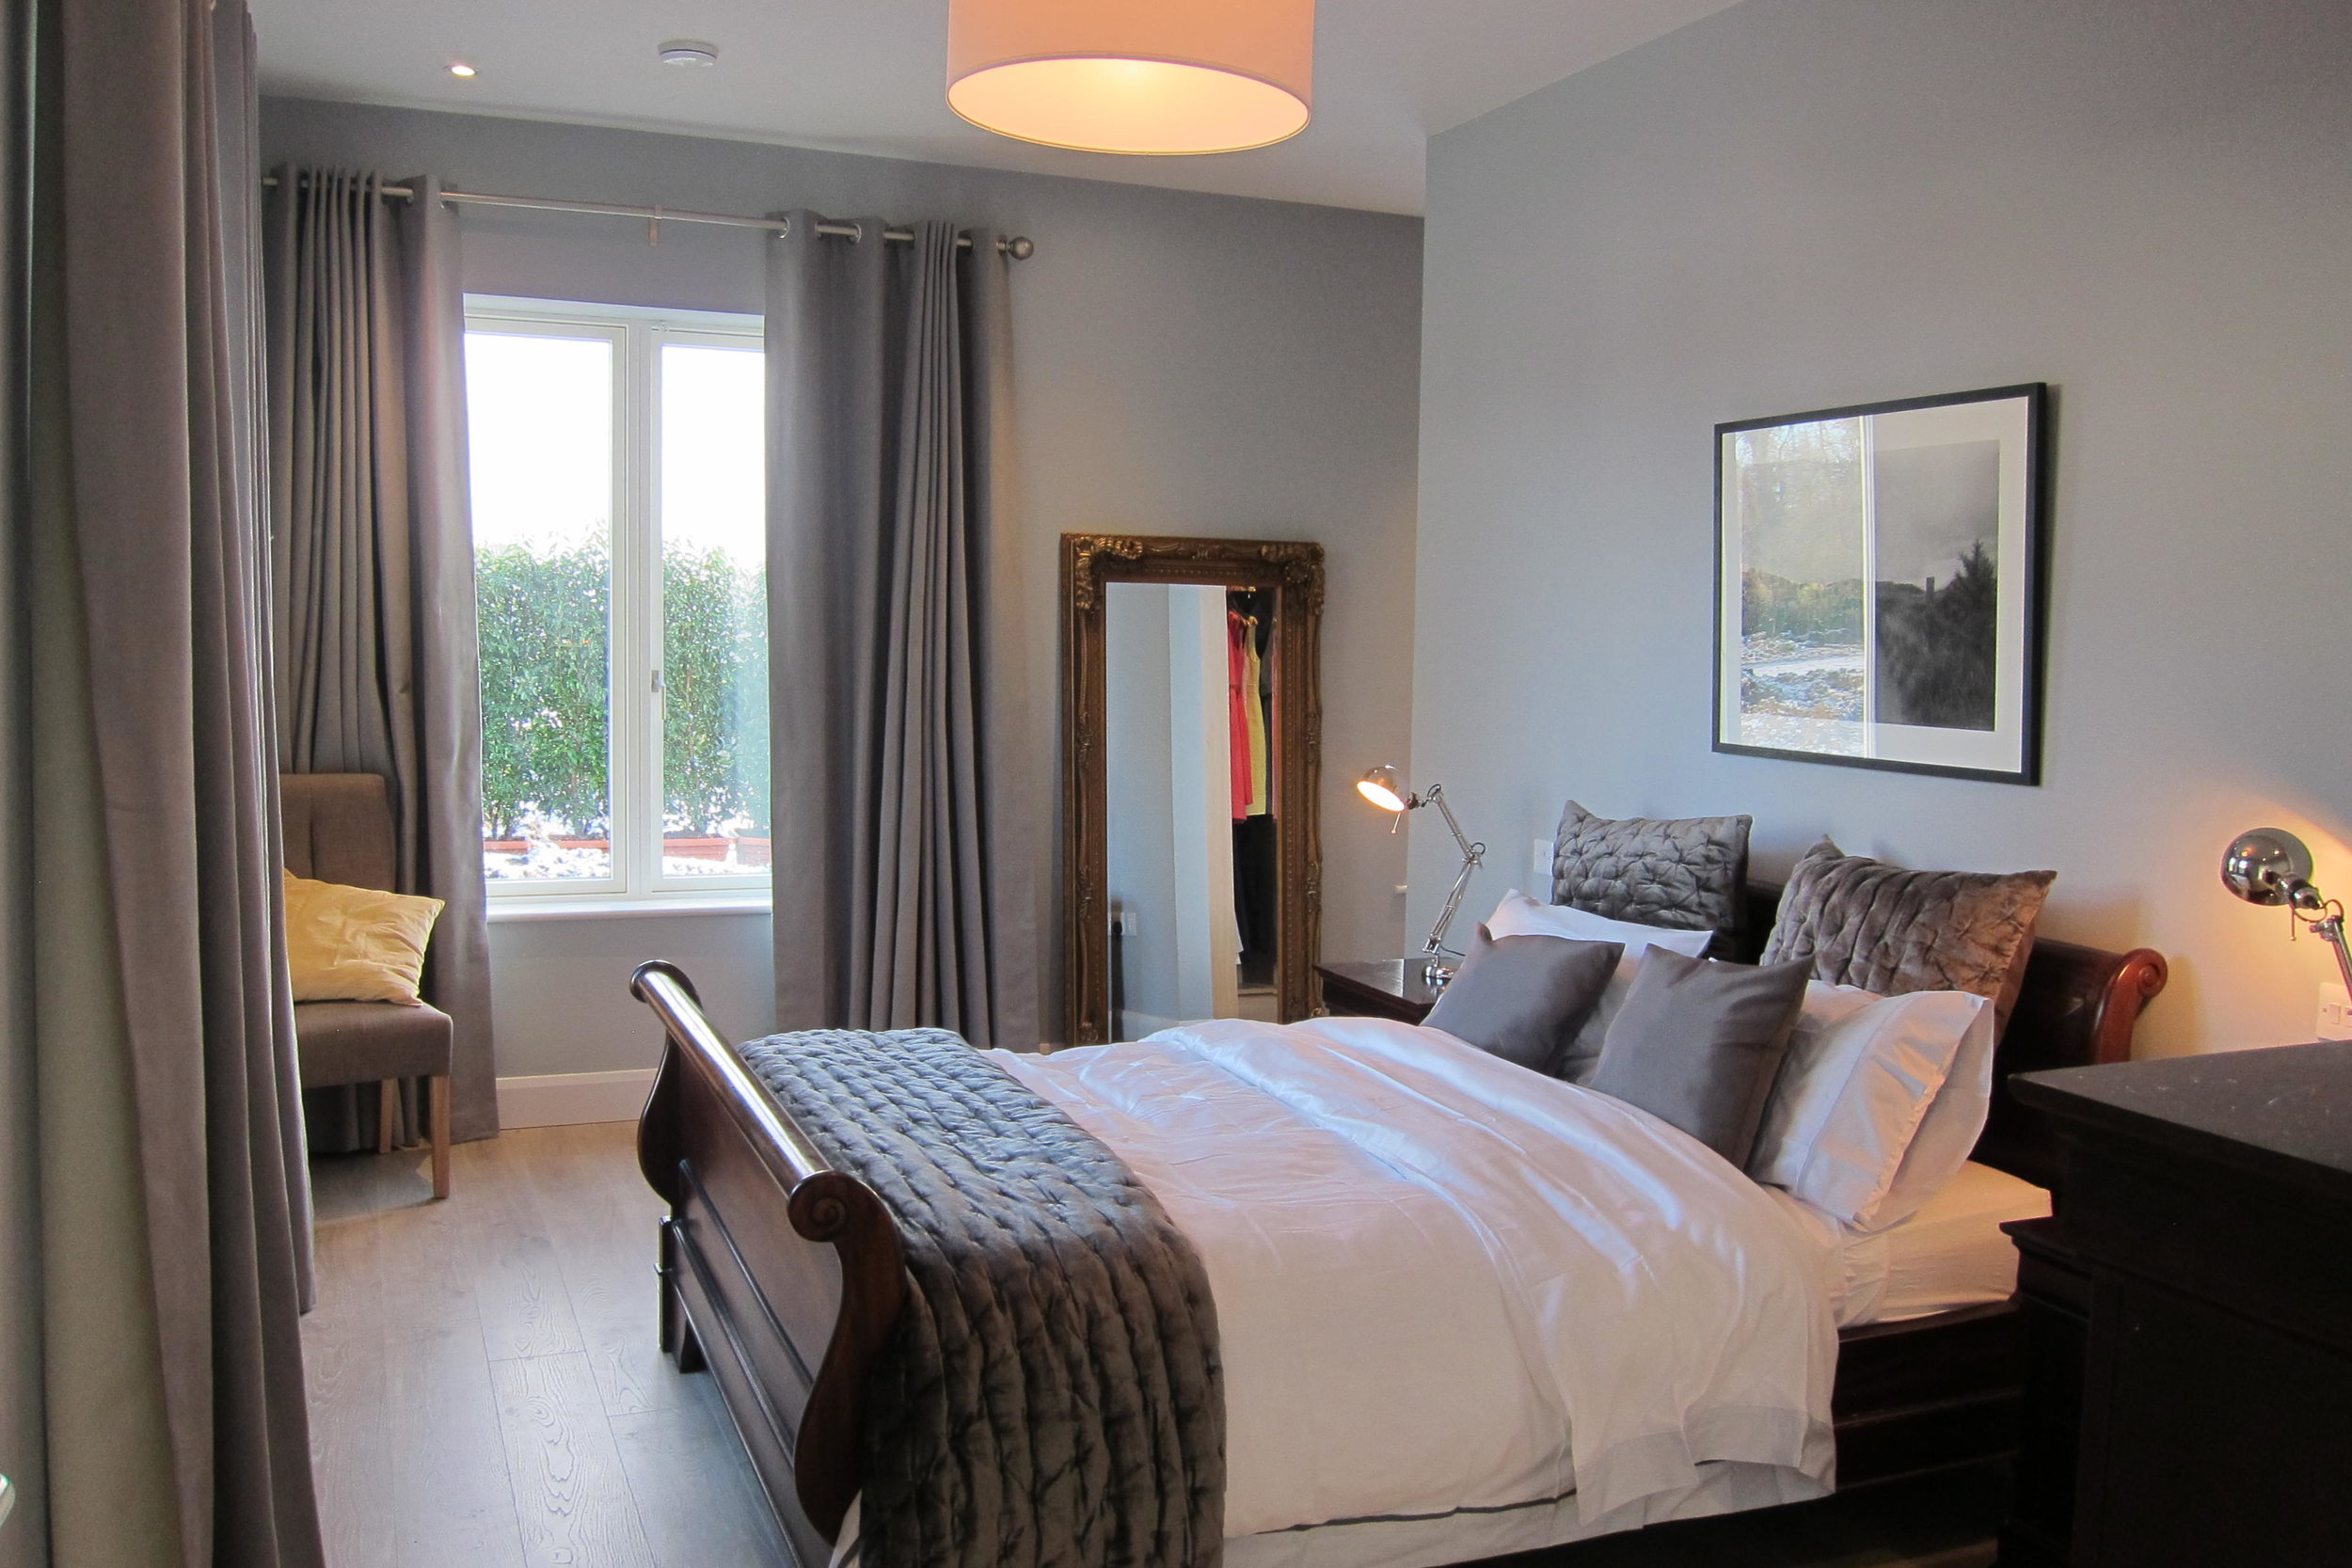 TX3 RTI10 Moate AFTER Master Bedroom .JPG